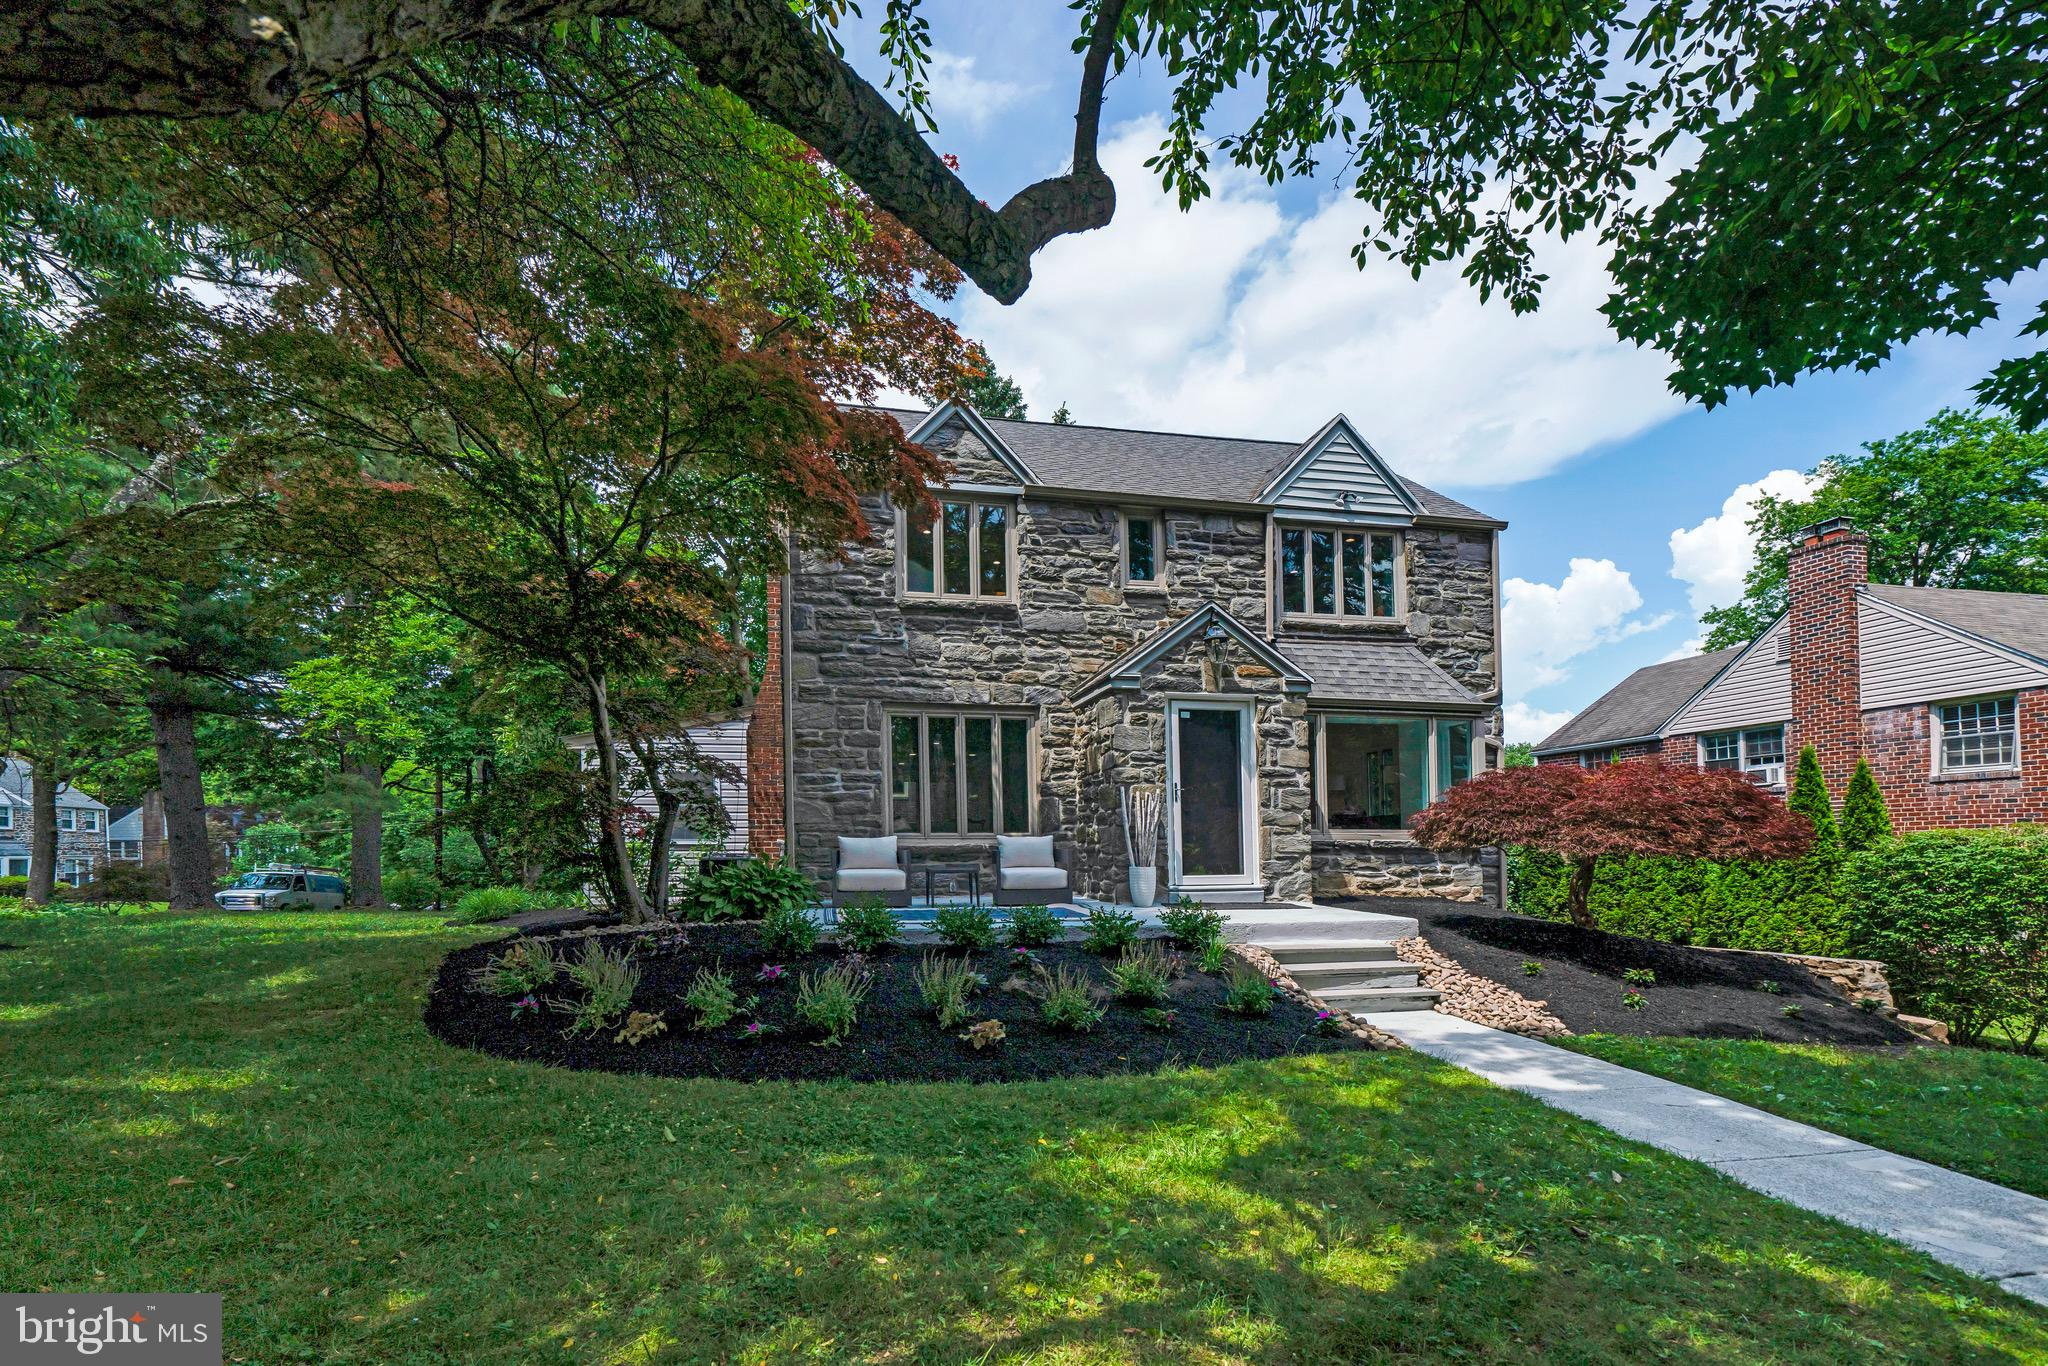 ULTRA RARE opportunity to own a RECENTLY RENOVATED, TURN-KEY, MOVE-IN-READY SUN-DRENCHED 1950'sMAIN LINE STONE COLONIAL in a WALK TO EVERYTHING LOCATION  quietly set on Levering Circle, one of Bala Cynwyd's most desired NO-THROUGH-CUL-DE-SAC STREETS...!Located just steps to Bala Cynwyd Park, the Cynwyd Heritage Trail and only .7 miles to the highly acclaimed Bala Cynwyd Elementary & Middle Schools (nationally recognized as a Blue Ribbon School of Excellence). This traditional 4 Bedroom 2 Full & 2 Half Bath home has been renovated and re-imagined incorporating character and details of a By-Gone Era with Fresh, DESIGNER-Sourced Finishes, Tasteful MODERN Updates, OPEN CONCEPT FLOOR PLAN & MOVE-IN CONDITION. Vestibule entrance opens to the center hall w/ gracious flared staircase, large Living Room w/ refinished hardwood floors & stone, wood-burning fireplace, large gracious dining room w/ picture window, Freshly Renovated Chef's Kitchen w/ Abundant High-End European designer sourced Maple soft close cabinetry w/ gorgeous lacquered finish, glass pulls, Quartz Counters, Subway Tiled Backsplash & High-End Stainless appliances including: 4 burner WOLF Range, Dacor convection microwave, GE Cafe French Door Refrigerator, GE Monogram Oven, Bosch Dishwasher, deep stainless sink w/ sprayer & Instant-Hot OPEN to Large Breakfast Room w/ Wall of Windows & door to the rear patio (perfect for BBQ's, Outdoor Entertaining, Dining Al Fresco) & NEW 1ST FLOOR FAMILY ROOM ADDITION w/ gas fireplace & 3 walls of windows + newly renovated guest powder room & outfitted coat closet. The 2nd level offers spacious Owners Suite w/ 2 outfitted closets & renovated Marble Bath w/ large Frameless Glass Shower+ 3 additional bedrooms w/ outfitted closets & updated Full Hall Bath w/ Floor to ceiling oversized white Tile w/ Mosaic Glass Accent Tub-Shower w/ Frameless Glass enclosure. The Finished Walk-Out daylight Lower level offers Playroom, Full Laundry w/ folding station NEW WASHER DRYER, 1/2 bath, ut